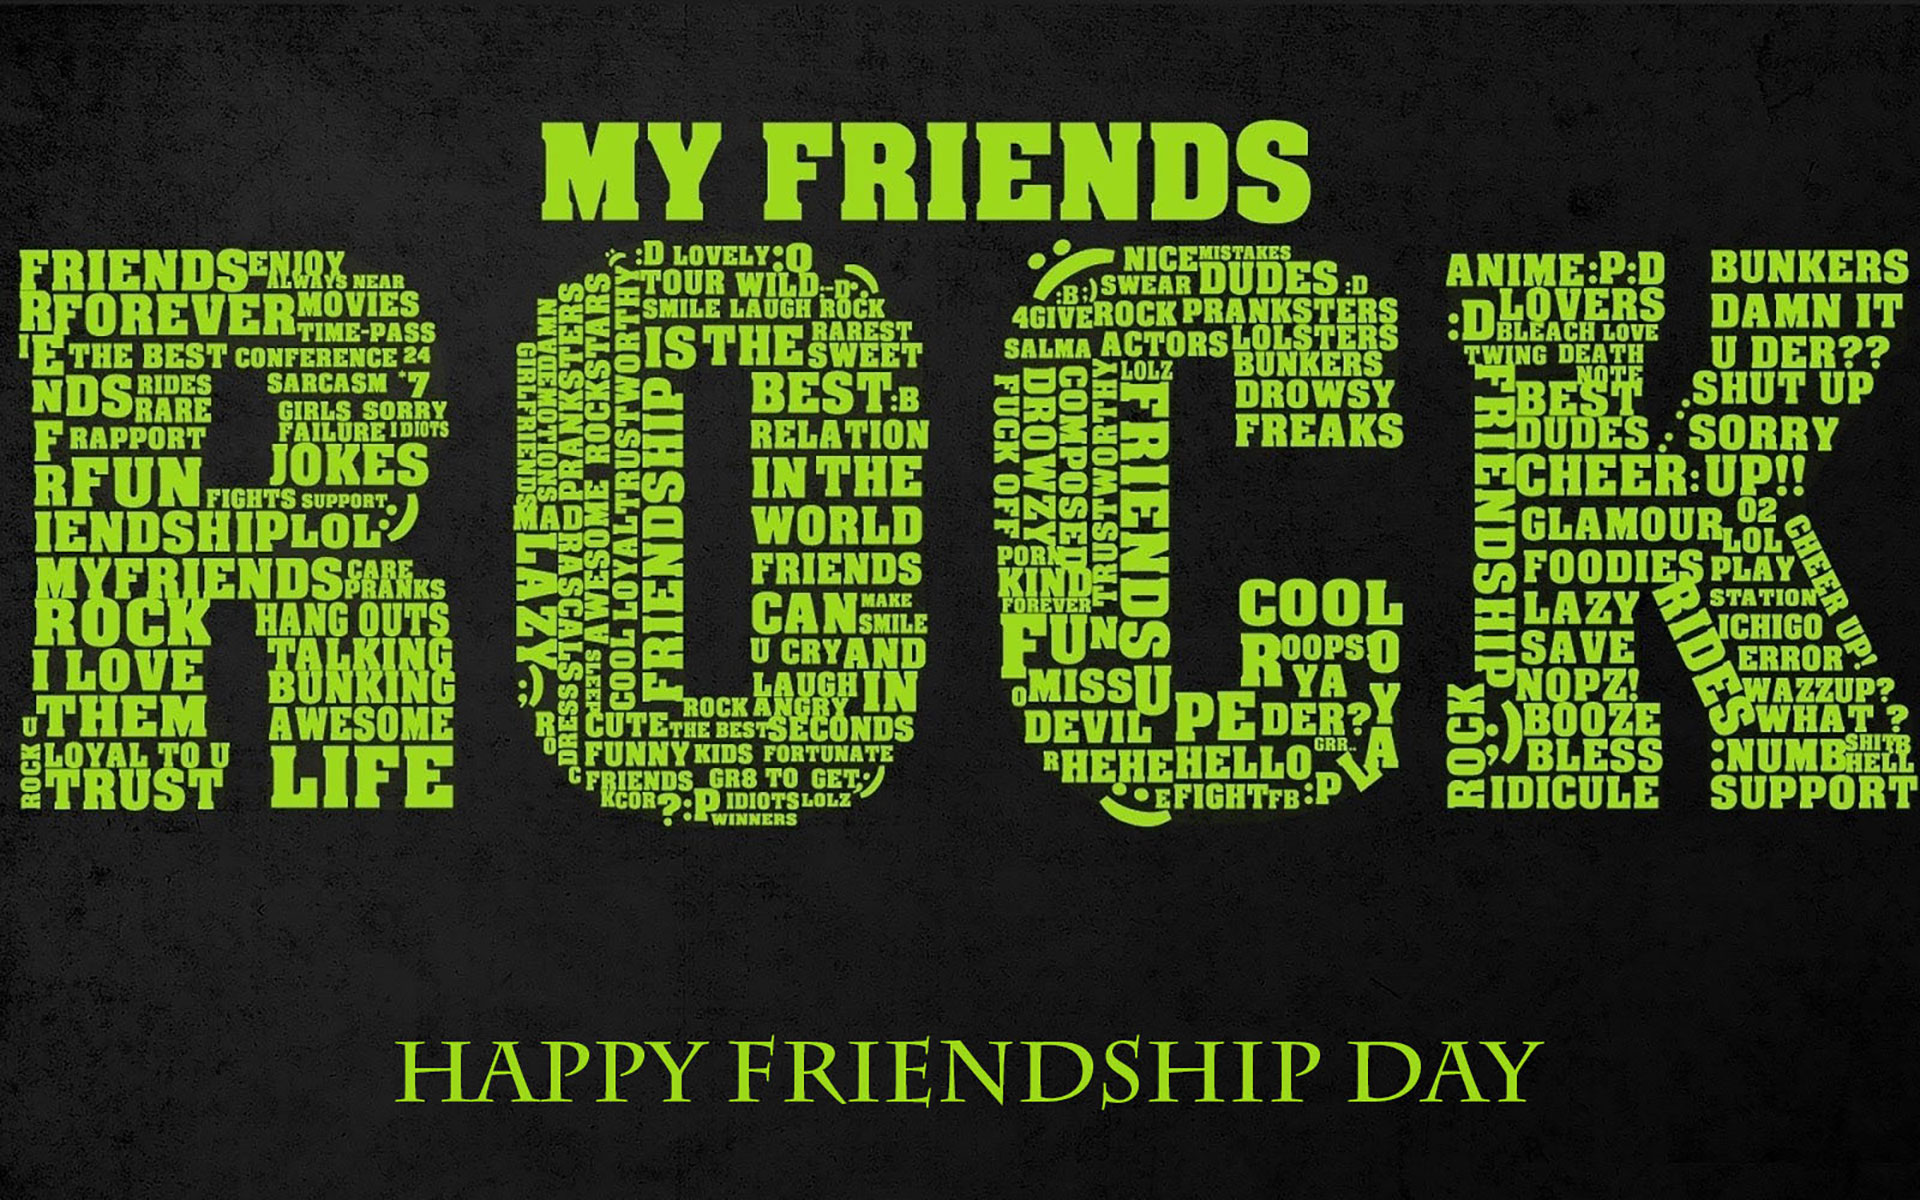 happy-friendship-day-meanings-rock-hd-wallpaper